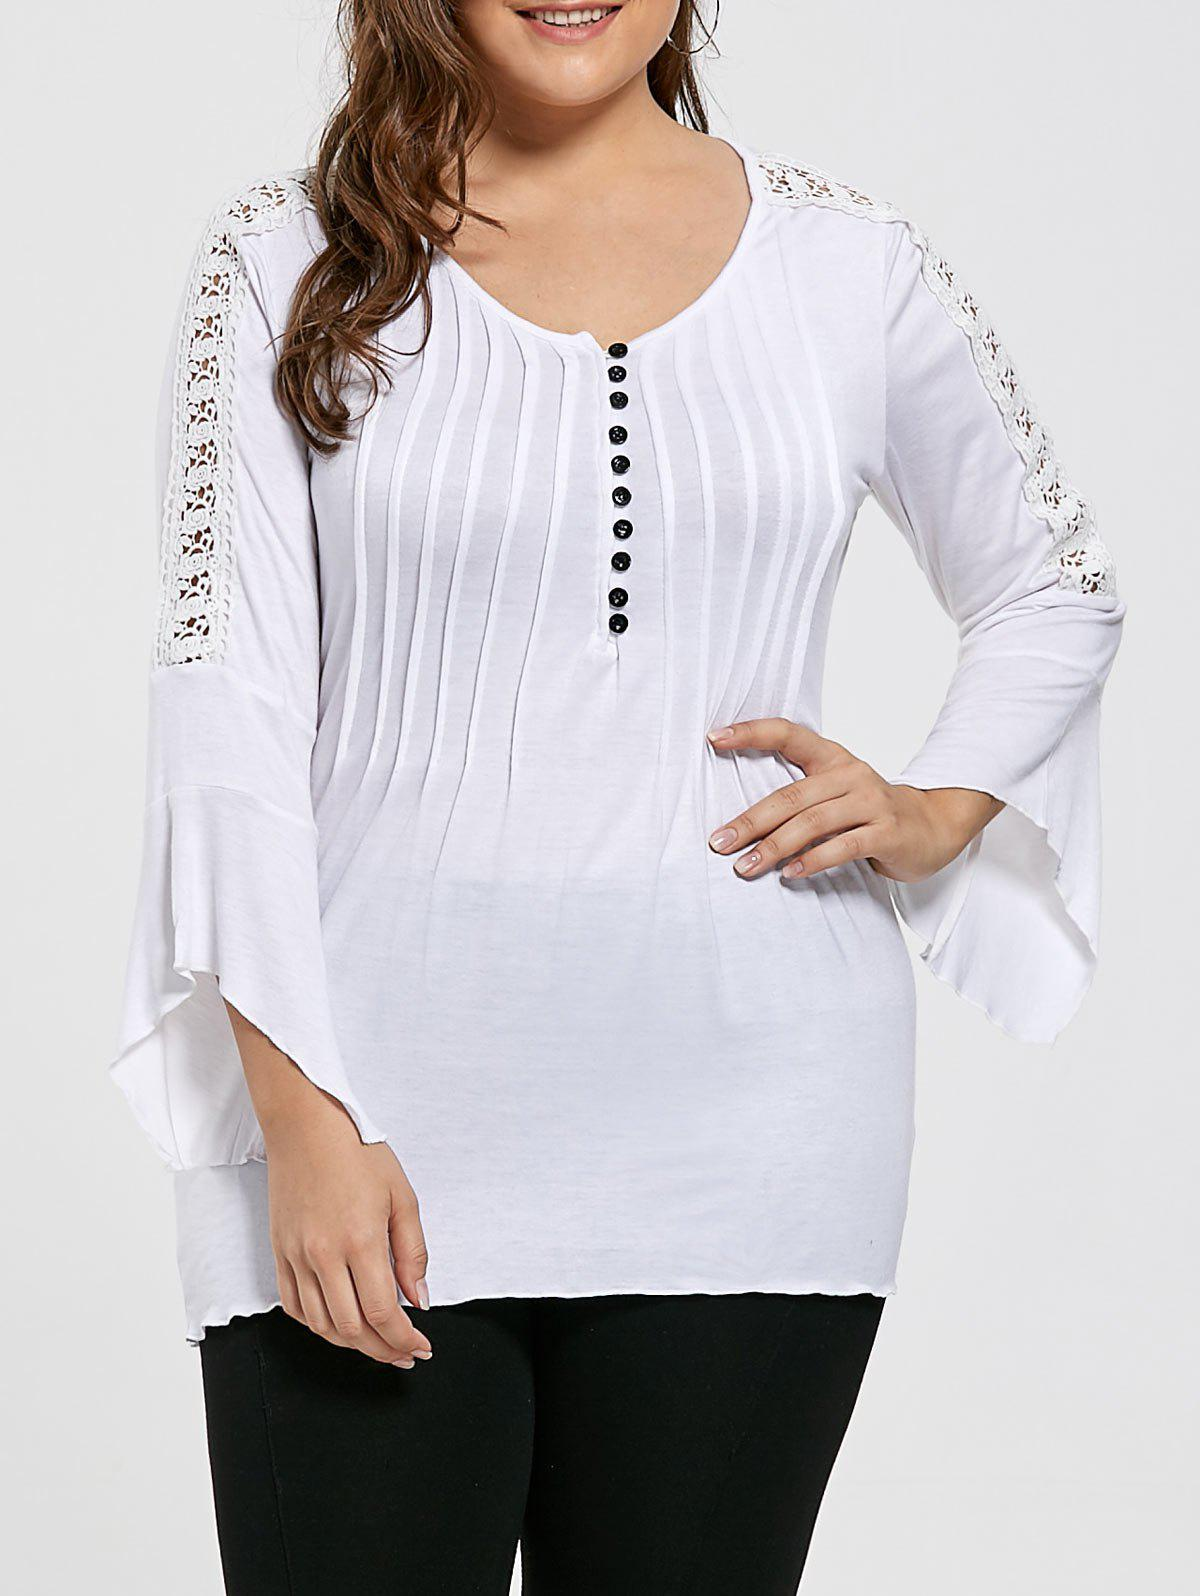 Plus Size Crinkle Lace Crochet Bell Sleeve T-shirt - WHITE 3XL